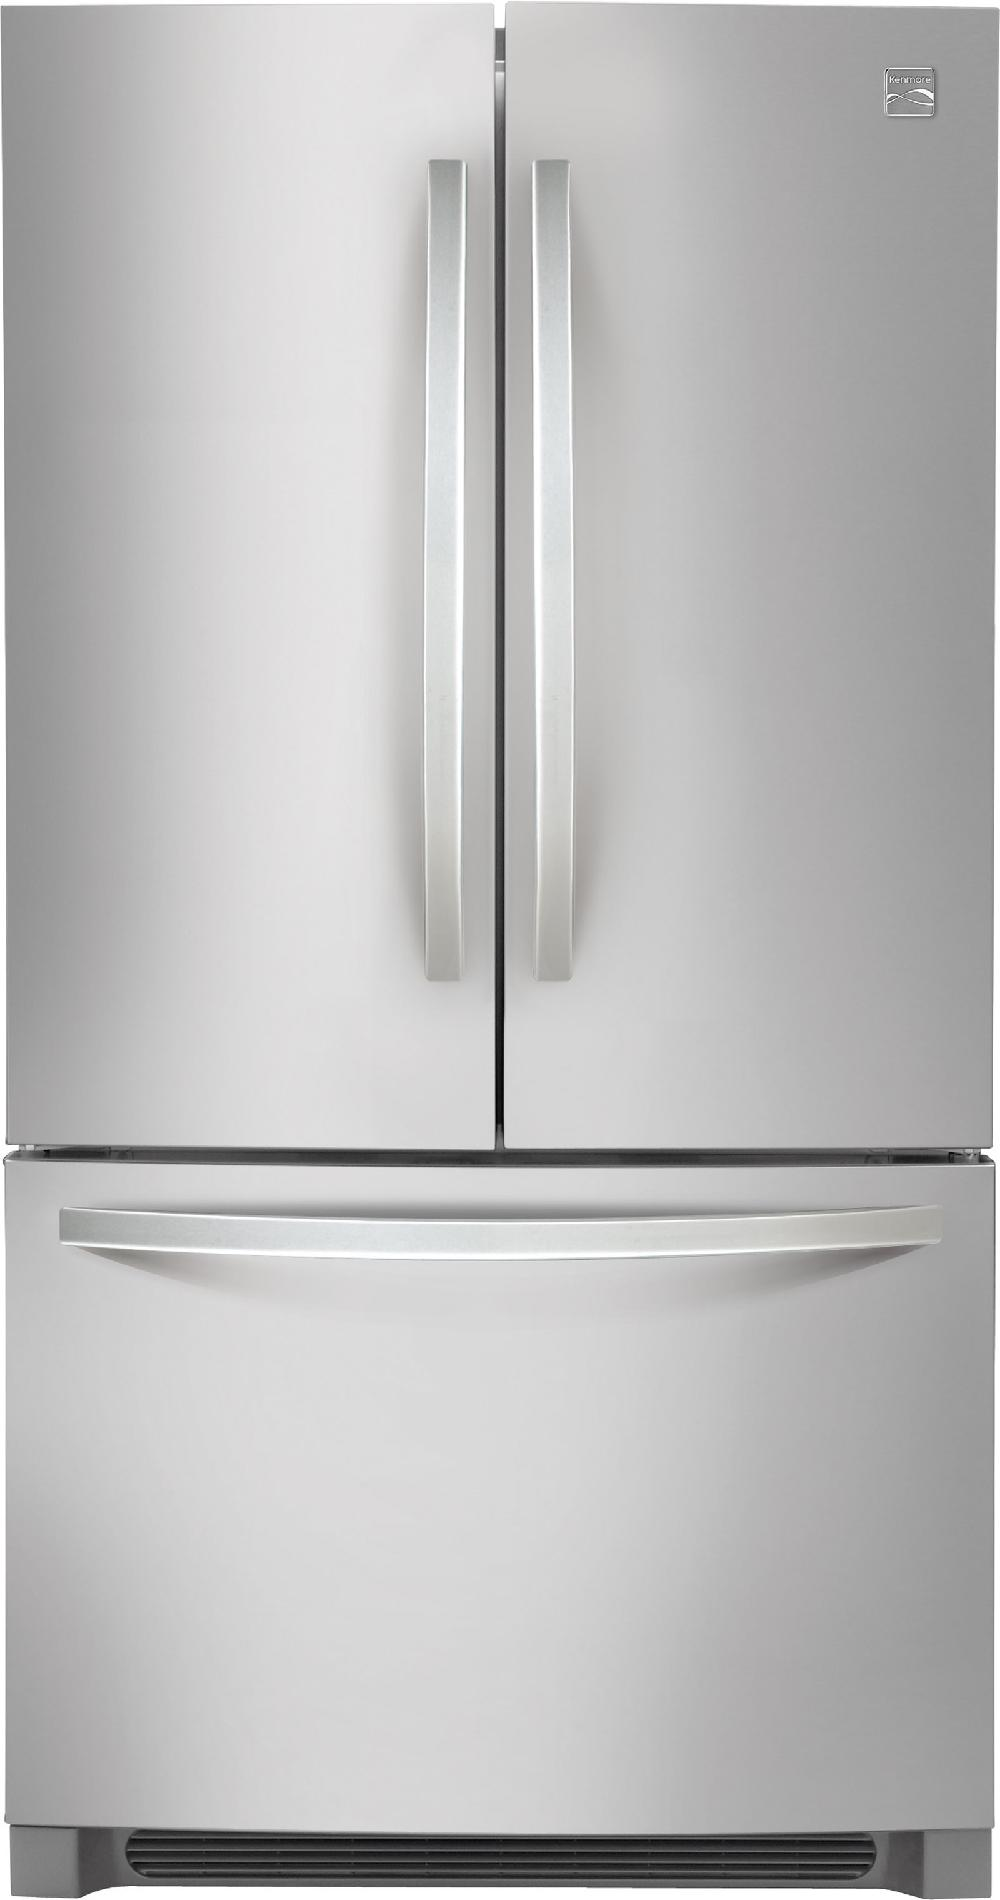 70413-27-6-cu-ft-French-Door-Refrigerator-Stainless-Steel